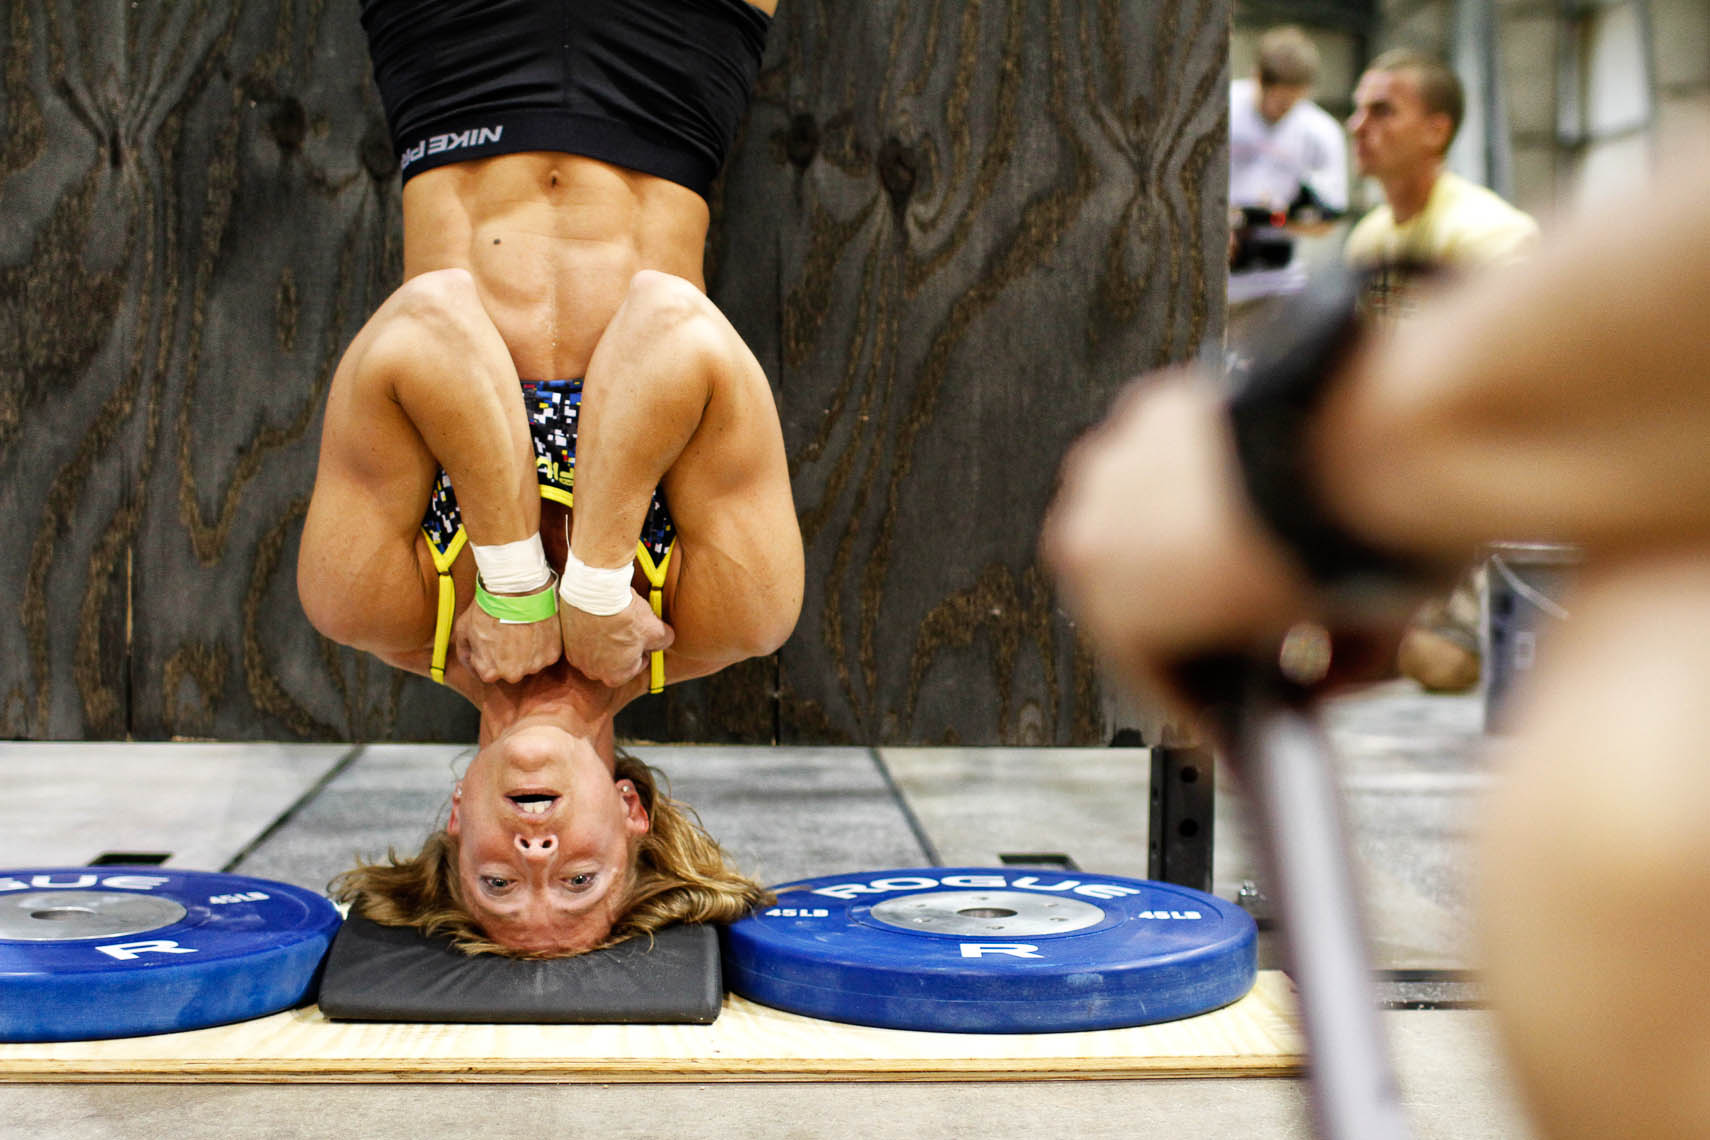 NicoleBedardPhotography_Athletes_CrossFit (3 of 4)-DUP.jpg